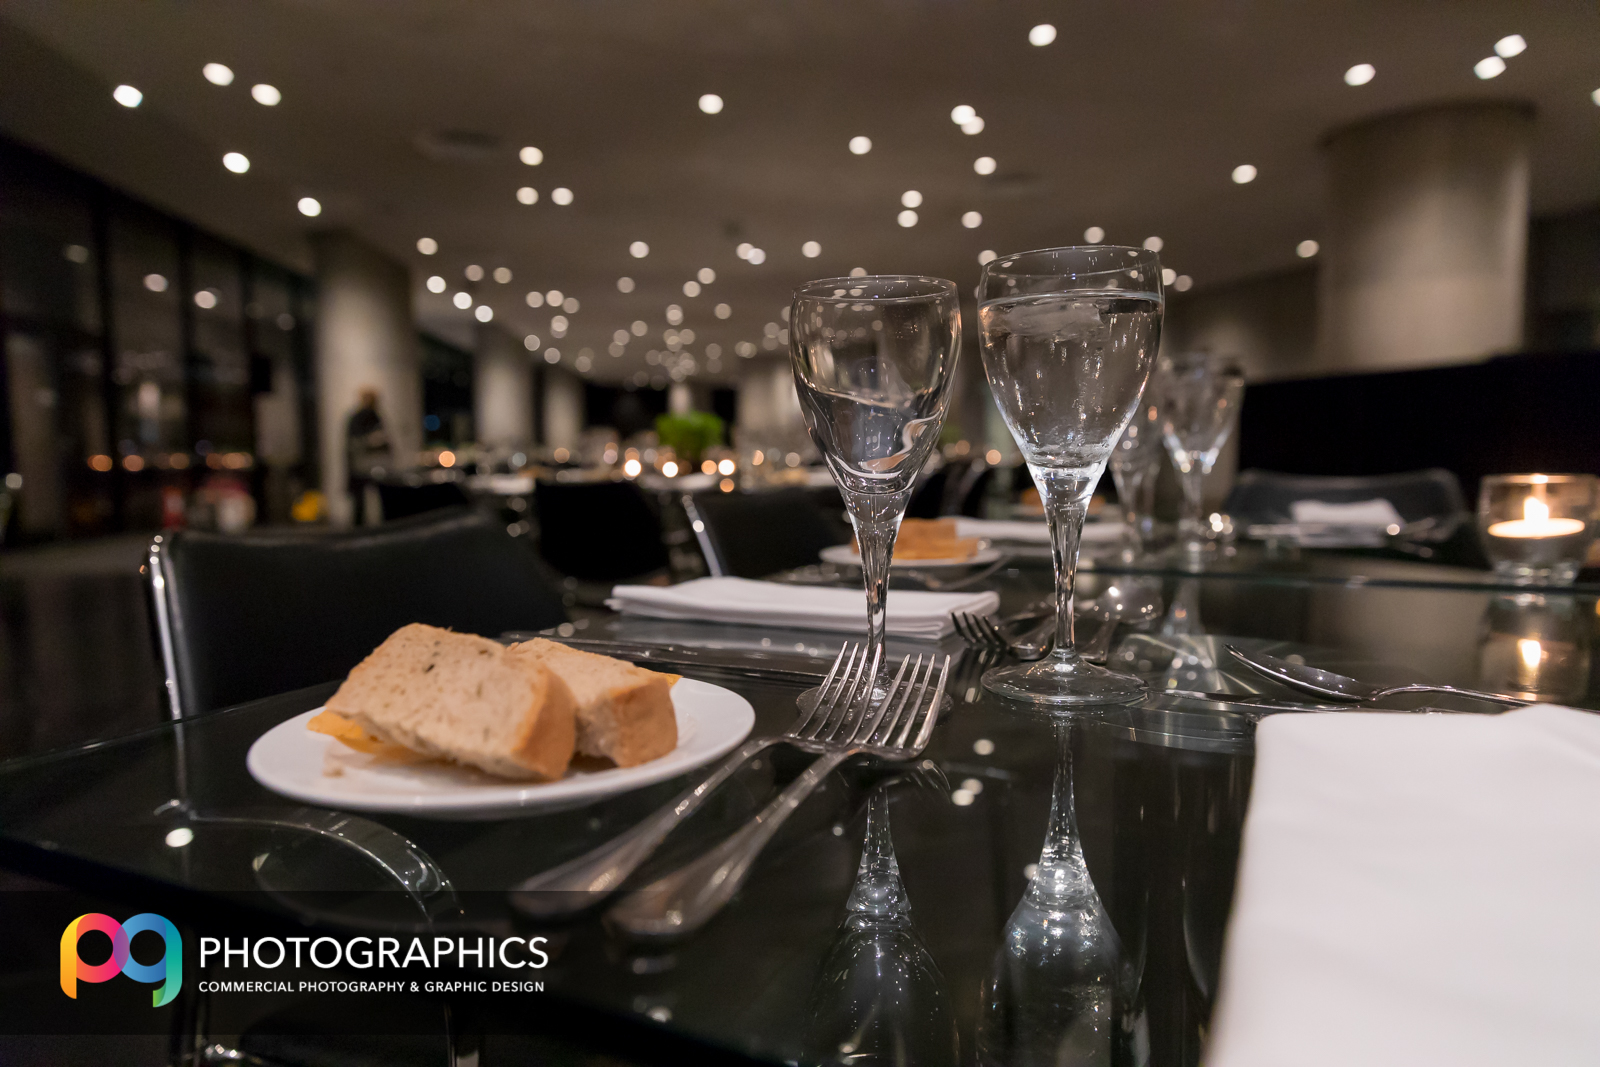 Conference-event-photography-glasgow-edinburgh-athens-14.jpg